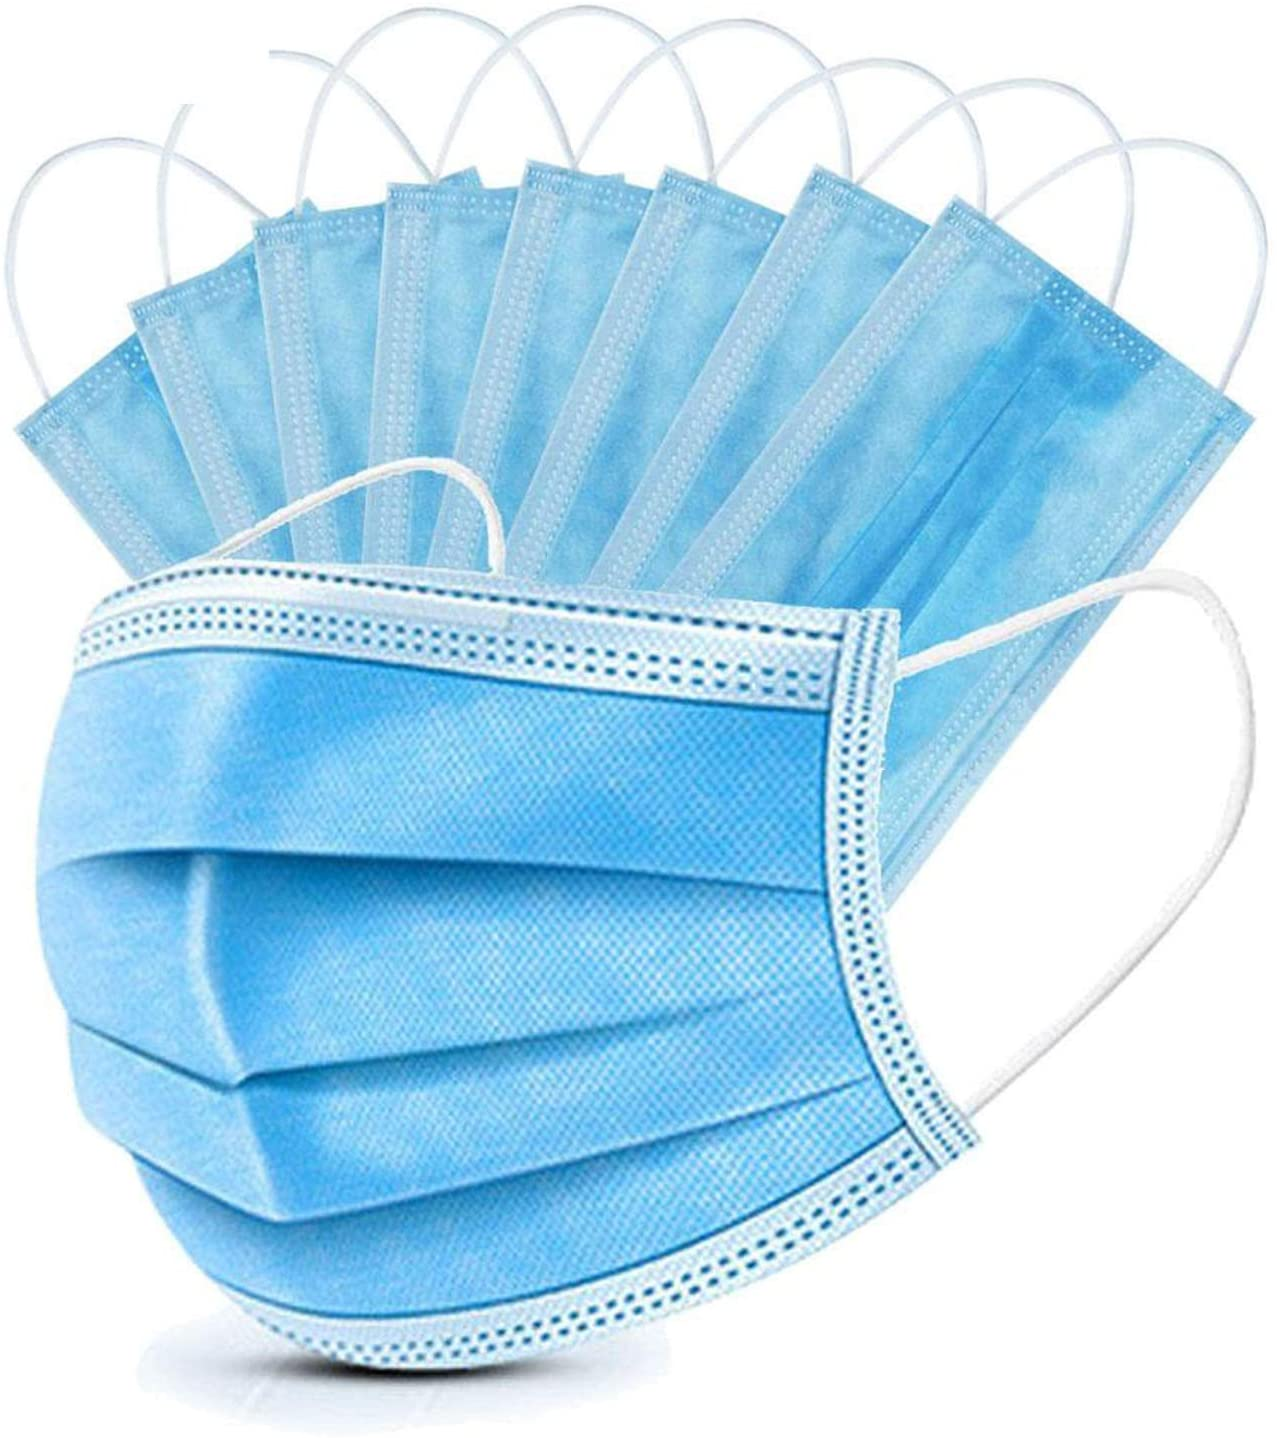 JYJC Disposable Face 3-Layer Suitable for Offices and Crowded Places Can Protect Safety, 50PACK, Blue